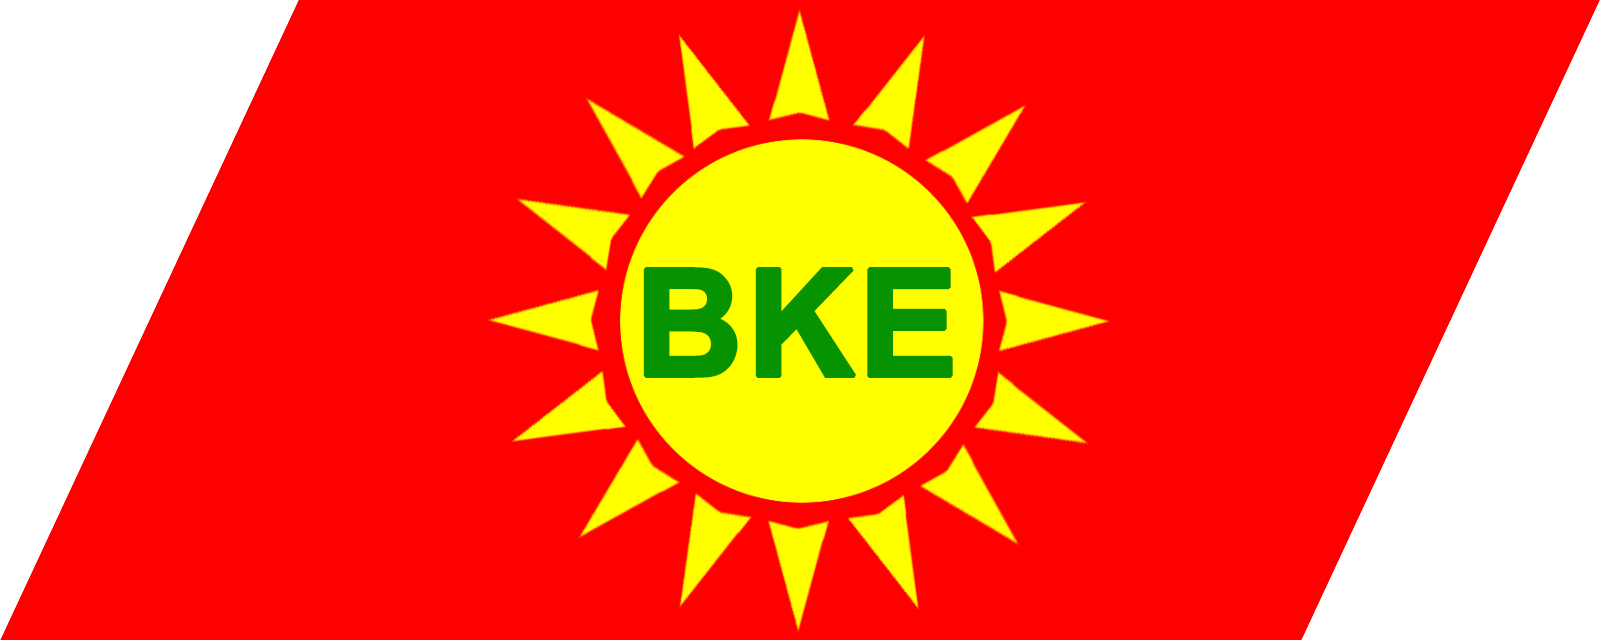 upload/files/Logo BKE solarV2_1.png